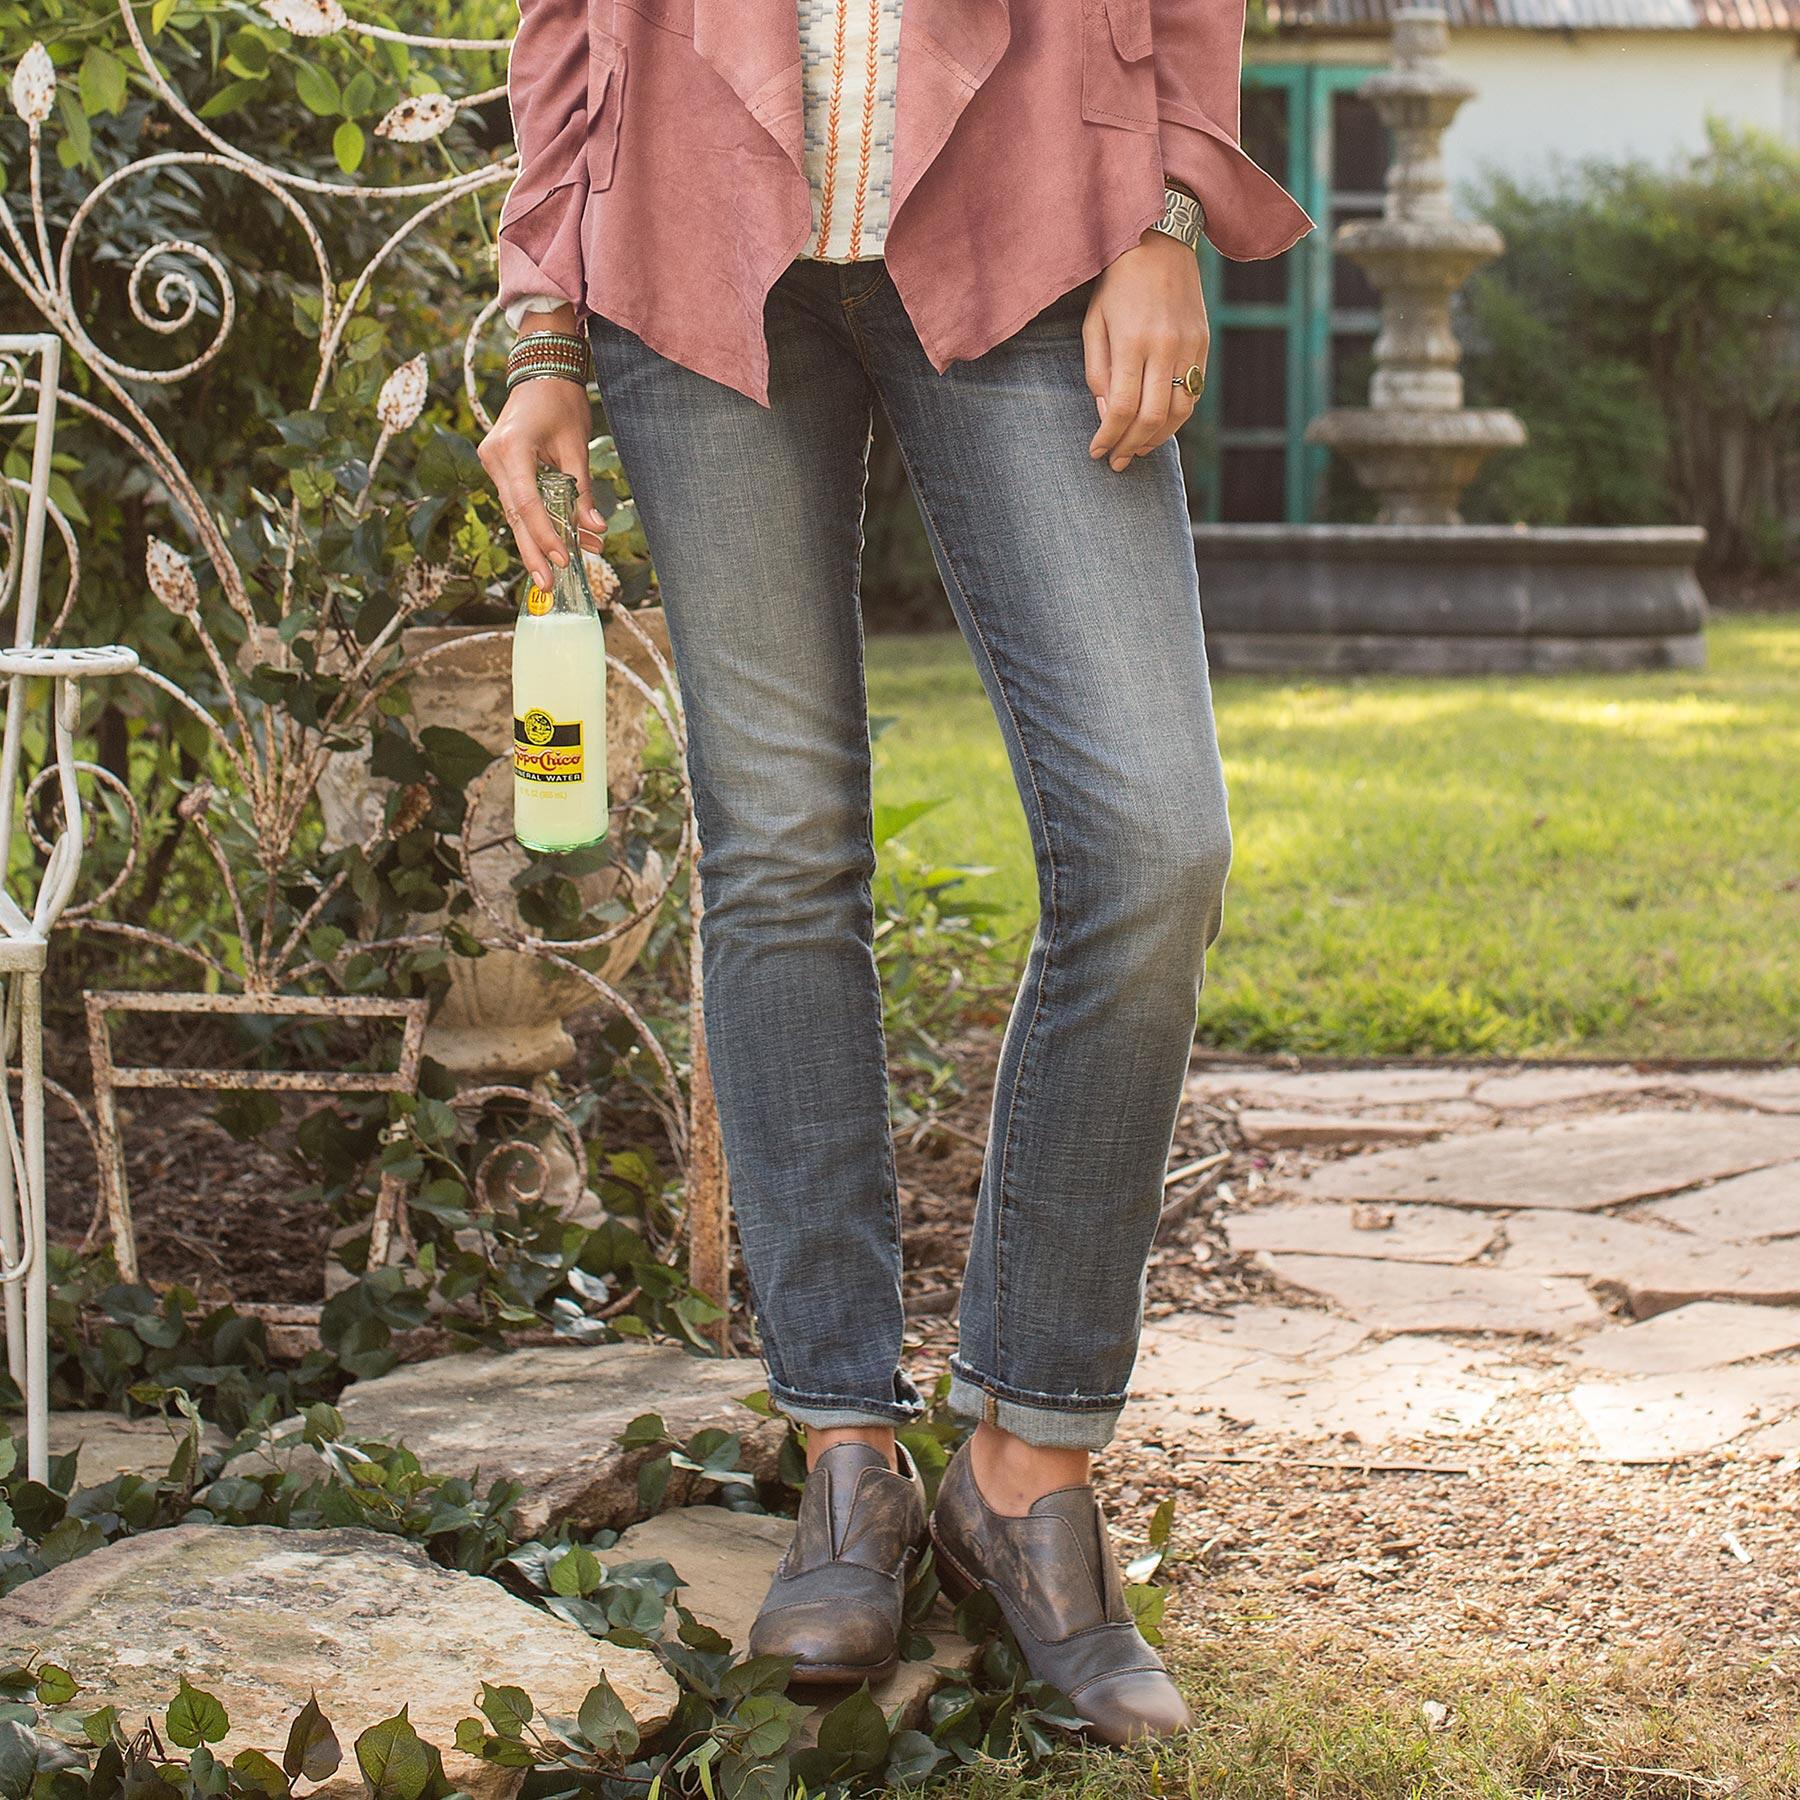 AUDREY CITADEL JEANS BY DRIFTWOOD: View 1